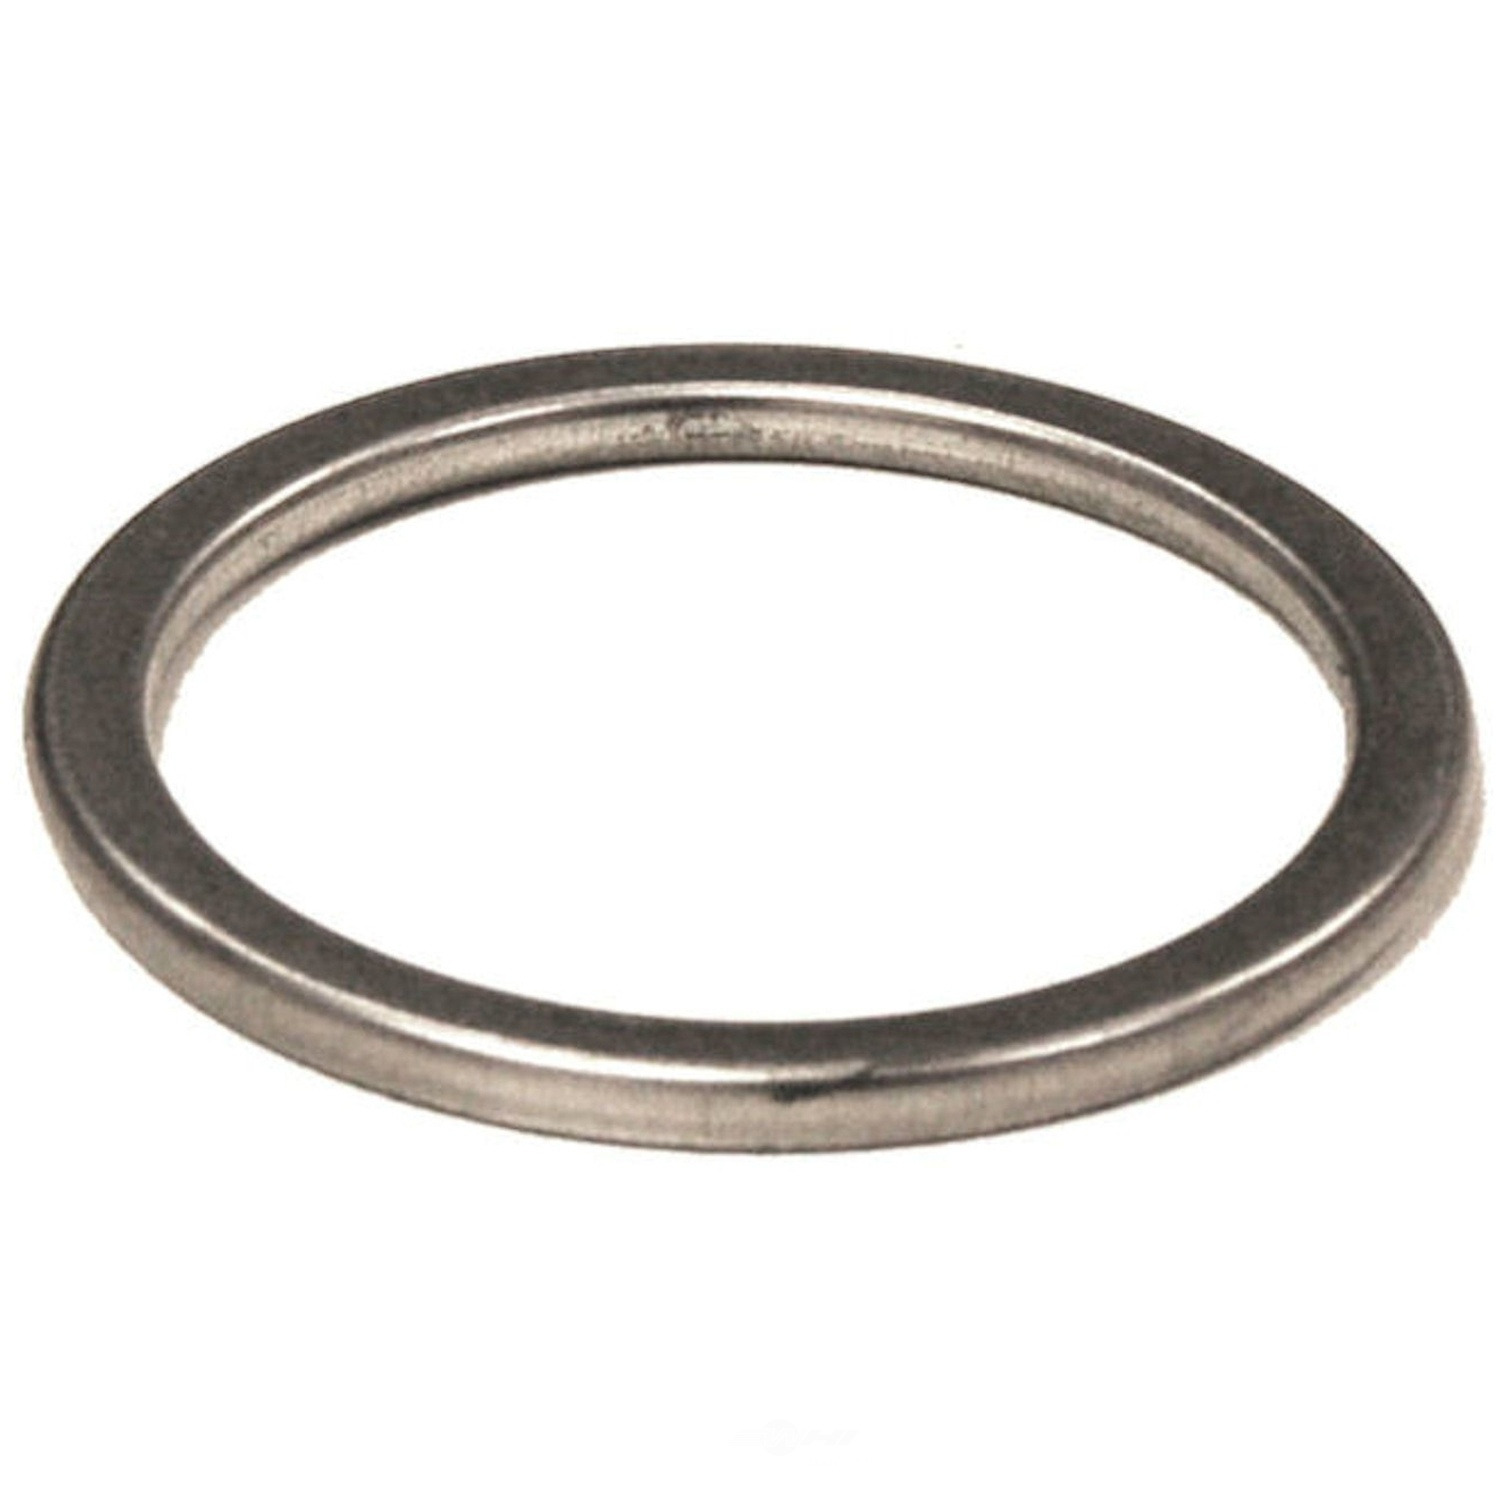 BOSAL 49 STATE CONVERTERS - Exhaust Pipe Flange Gasket (Front) - BSF 256-287